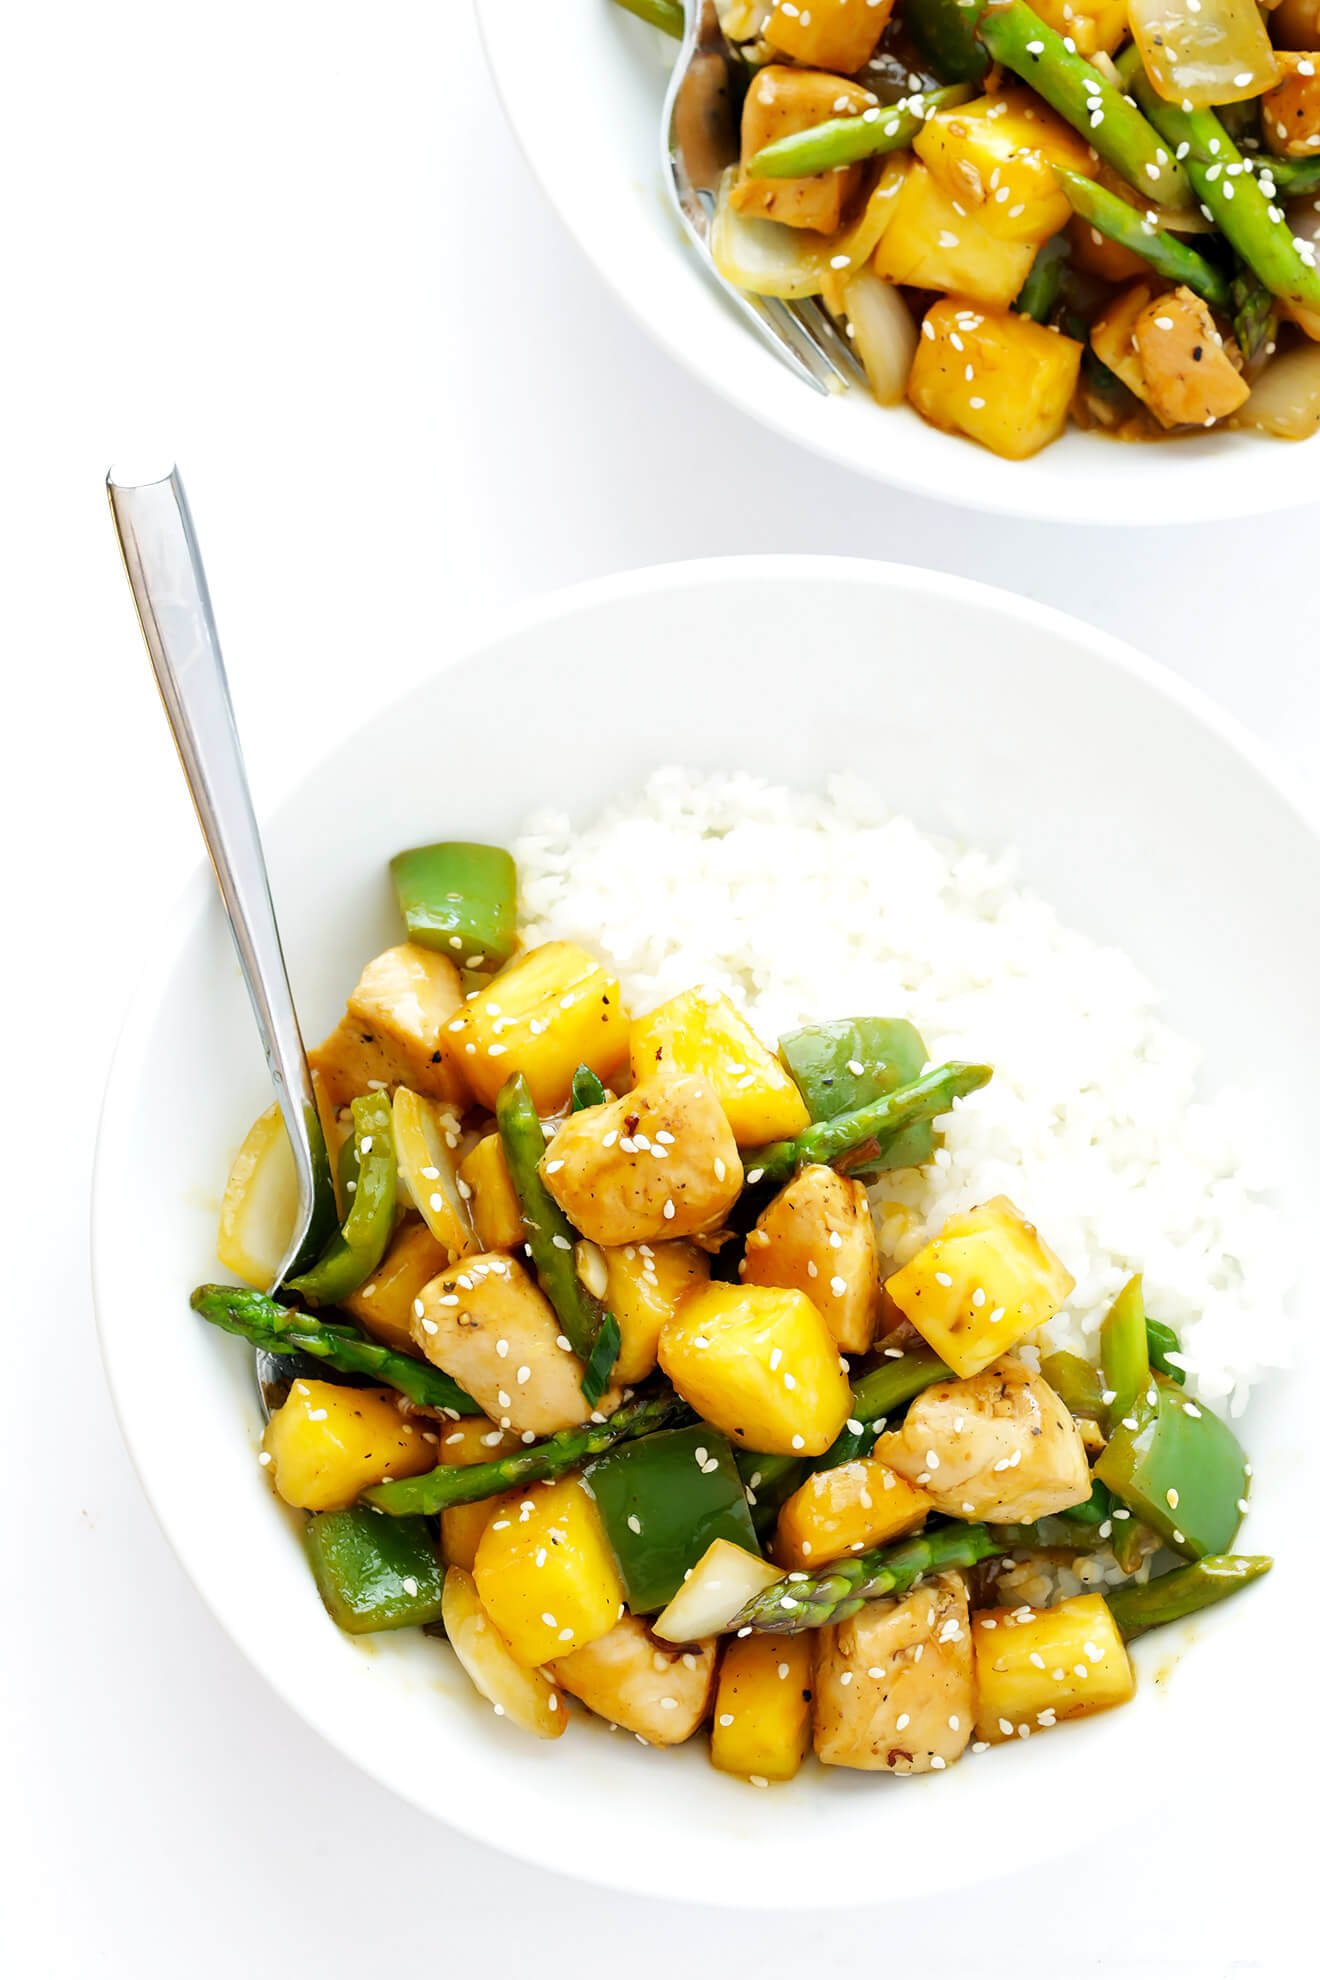 This 20-Minute Pineapple Ginger Chicken Stir-Fry can be made with your favorite veggies, and it's so easy and delicious! | gimmesomeoven.com